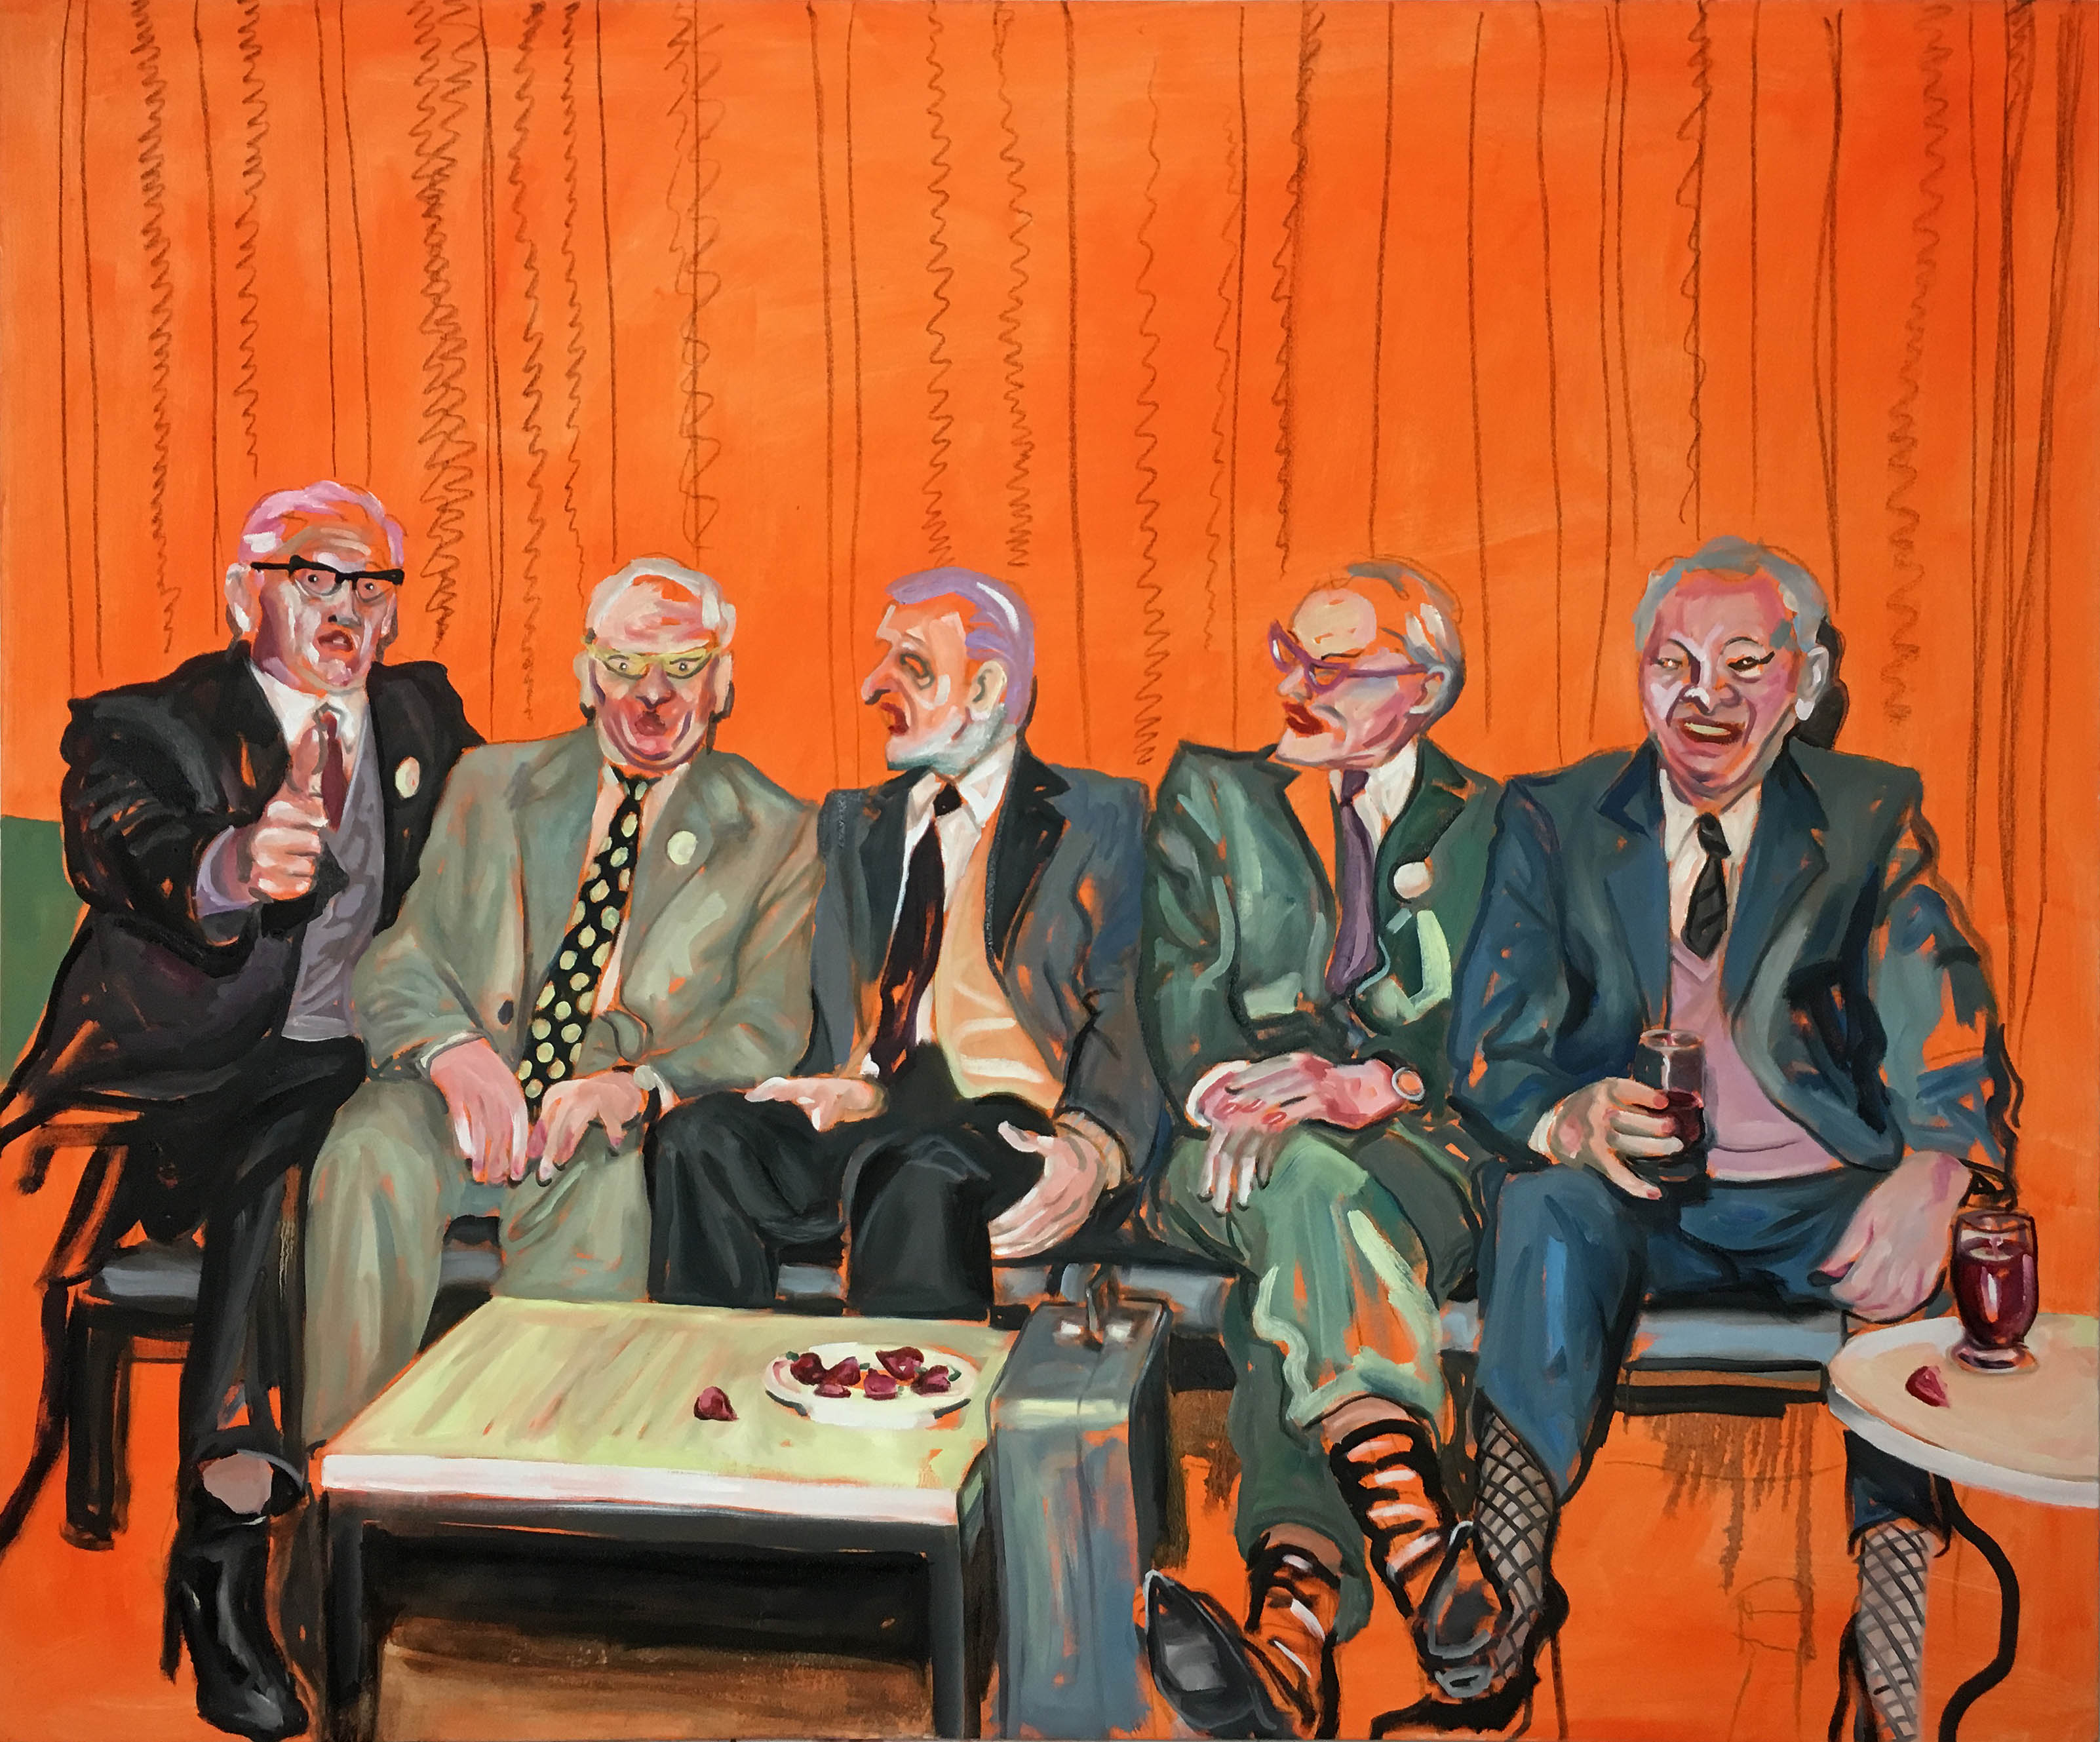 'Friends That Cross Together Stay Together', 2018 Adam Baker Oil on canvas, 150cm x 180cm